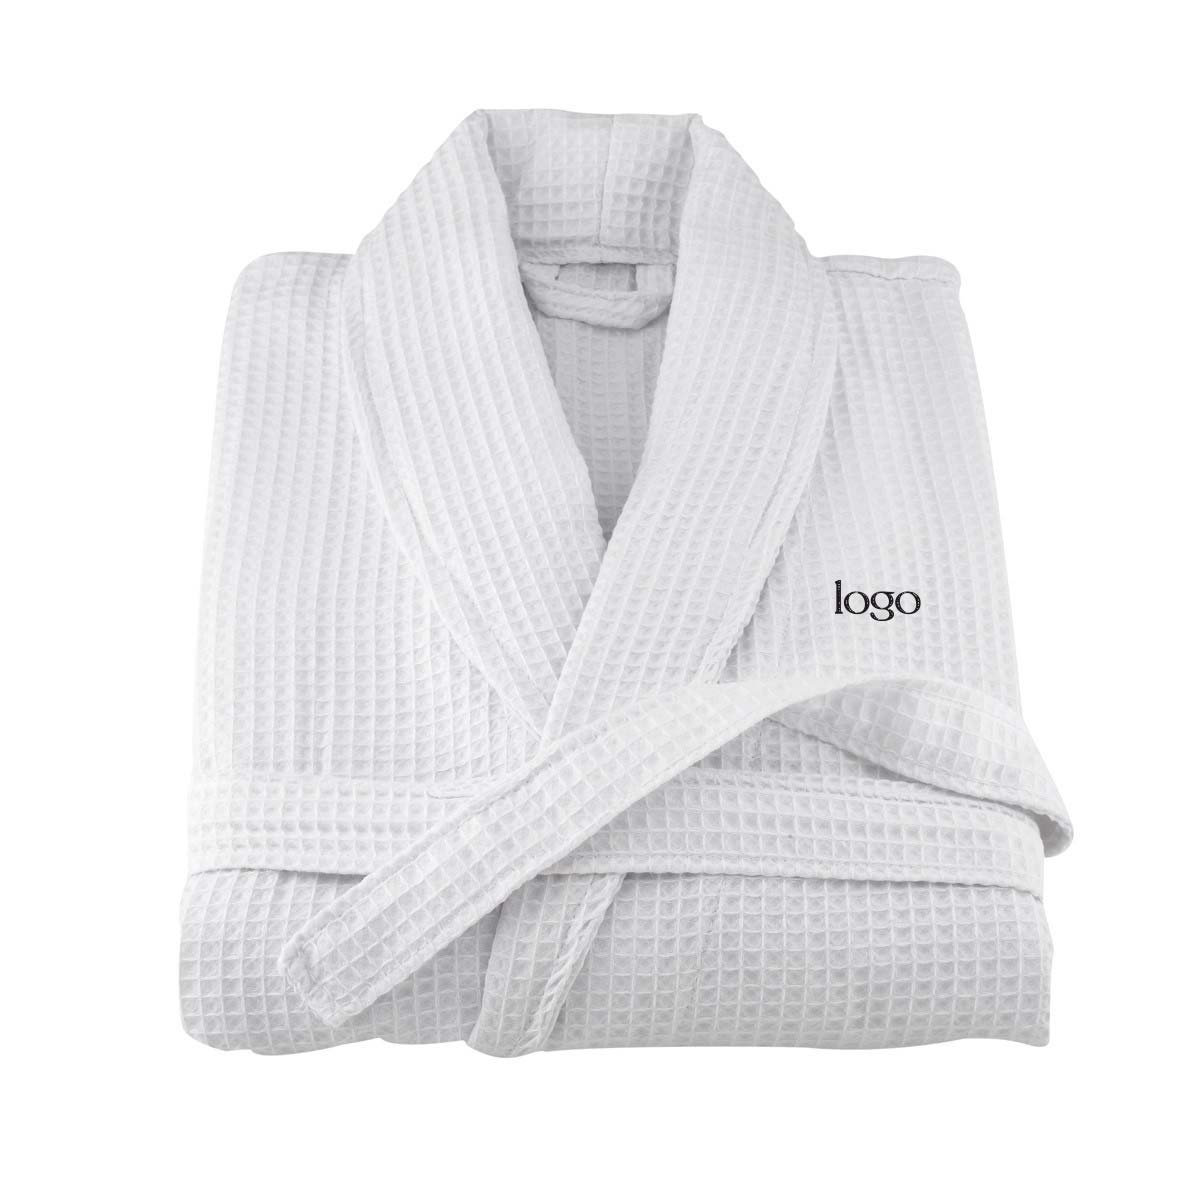 302229 waffle weave robe one location embroidered